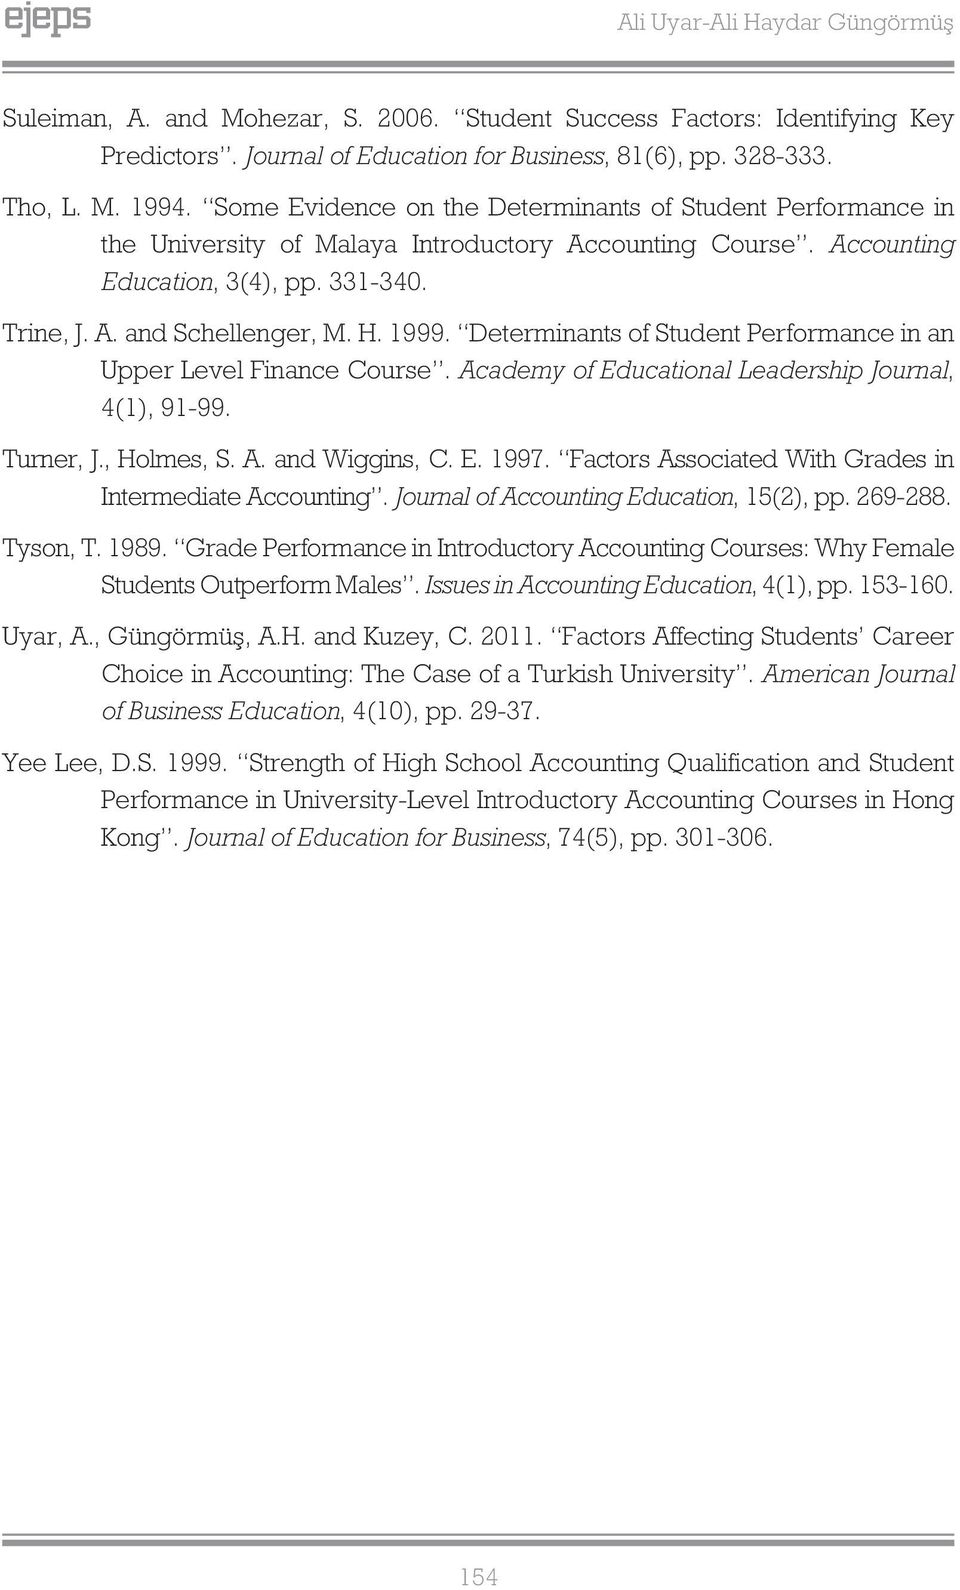 Determinants of Student Performance in an Upper Level Finance Course. Academy of Educational Leadership Journal, 4(1), 91-99. Turner, J., Holmes, S. A. and Wiggins, C. E. 1997.